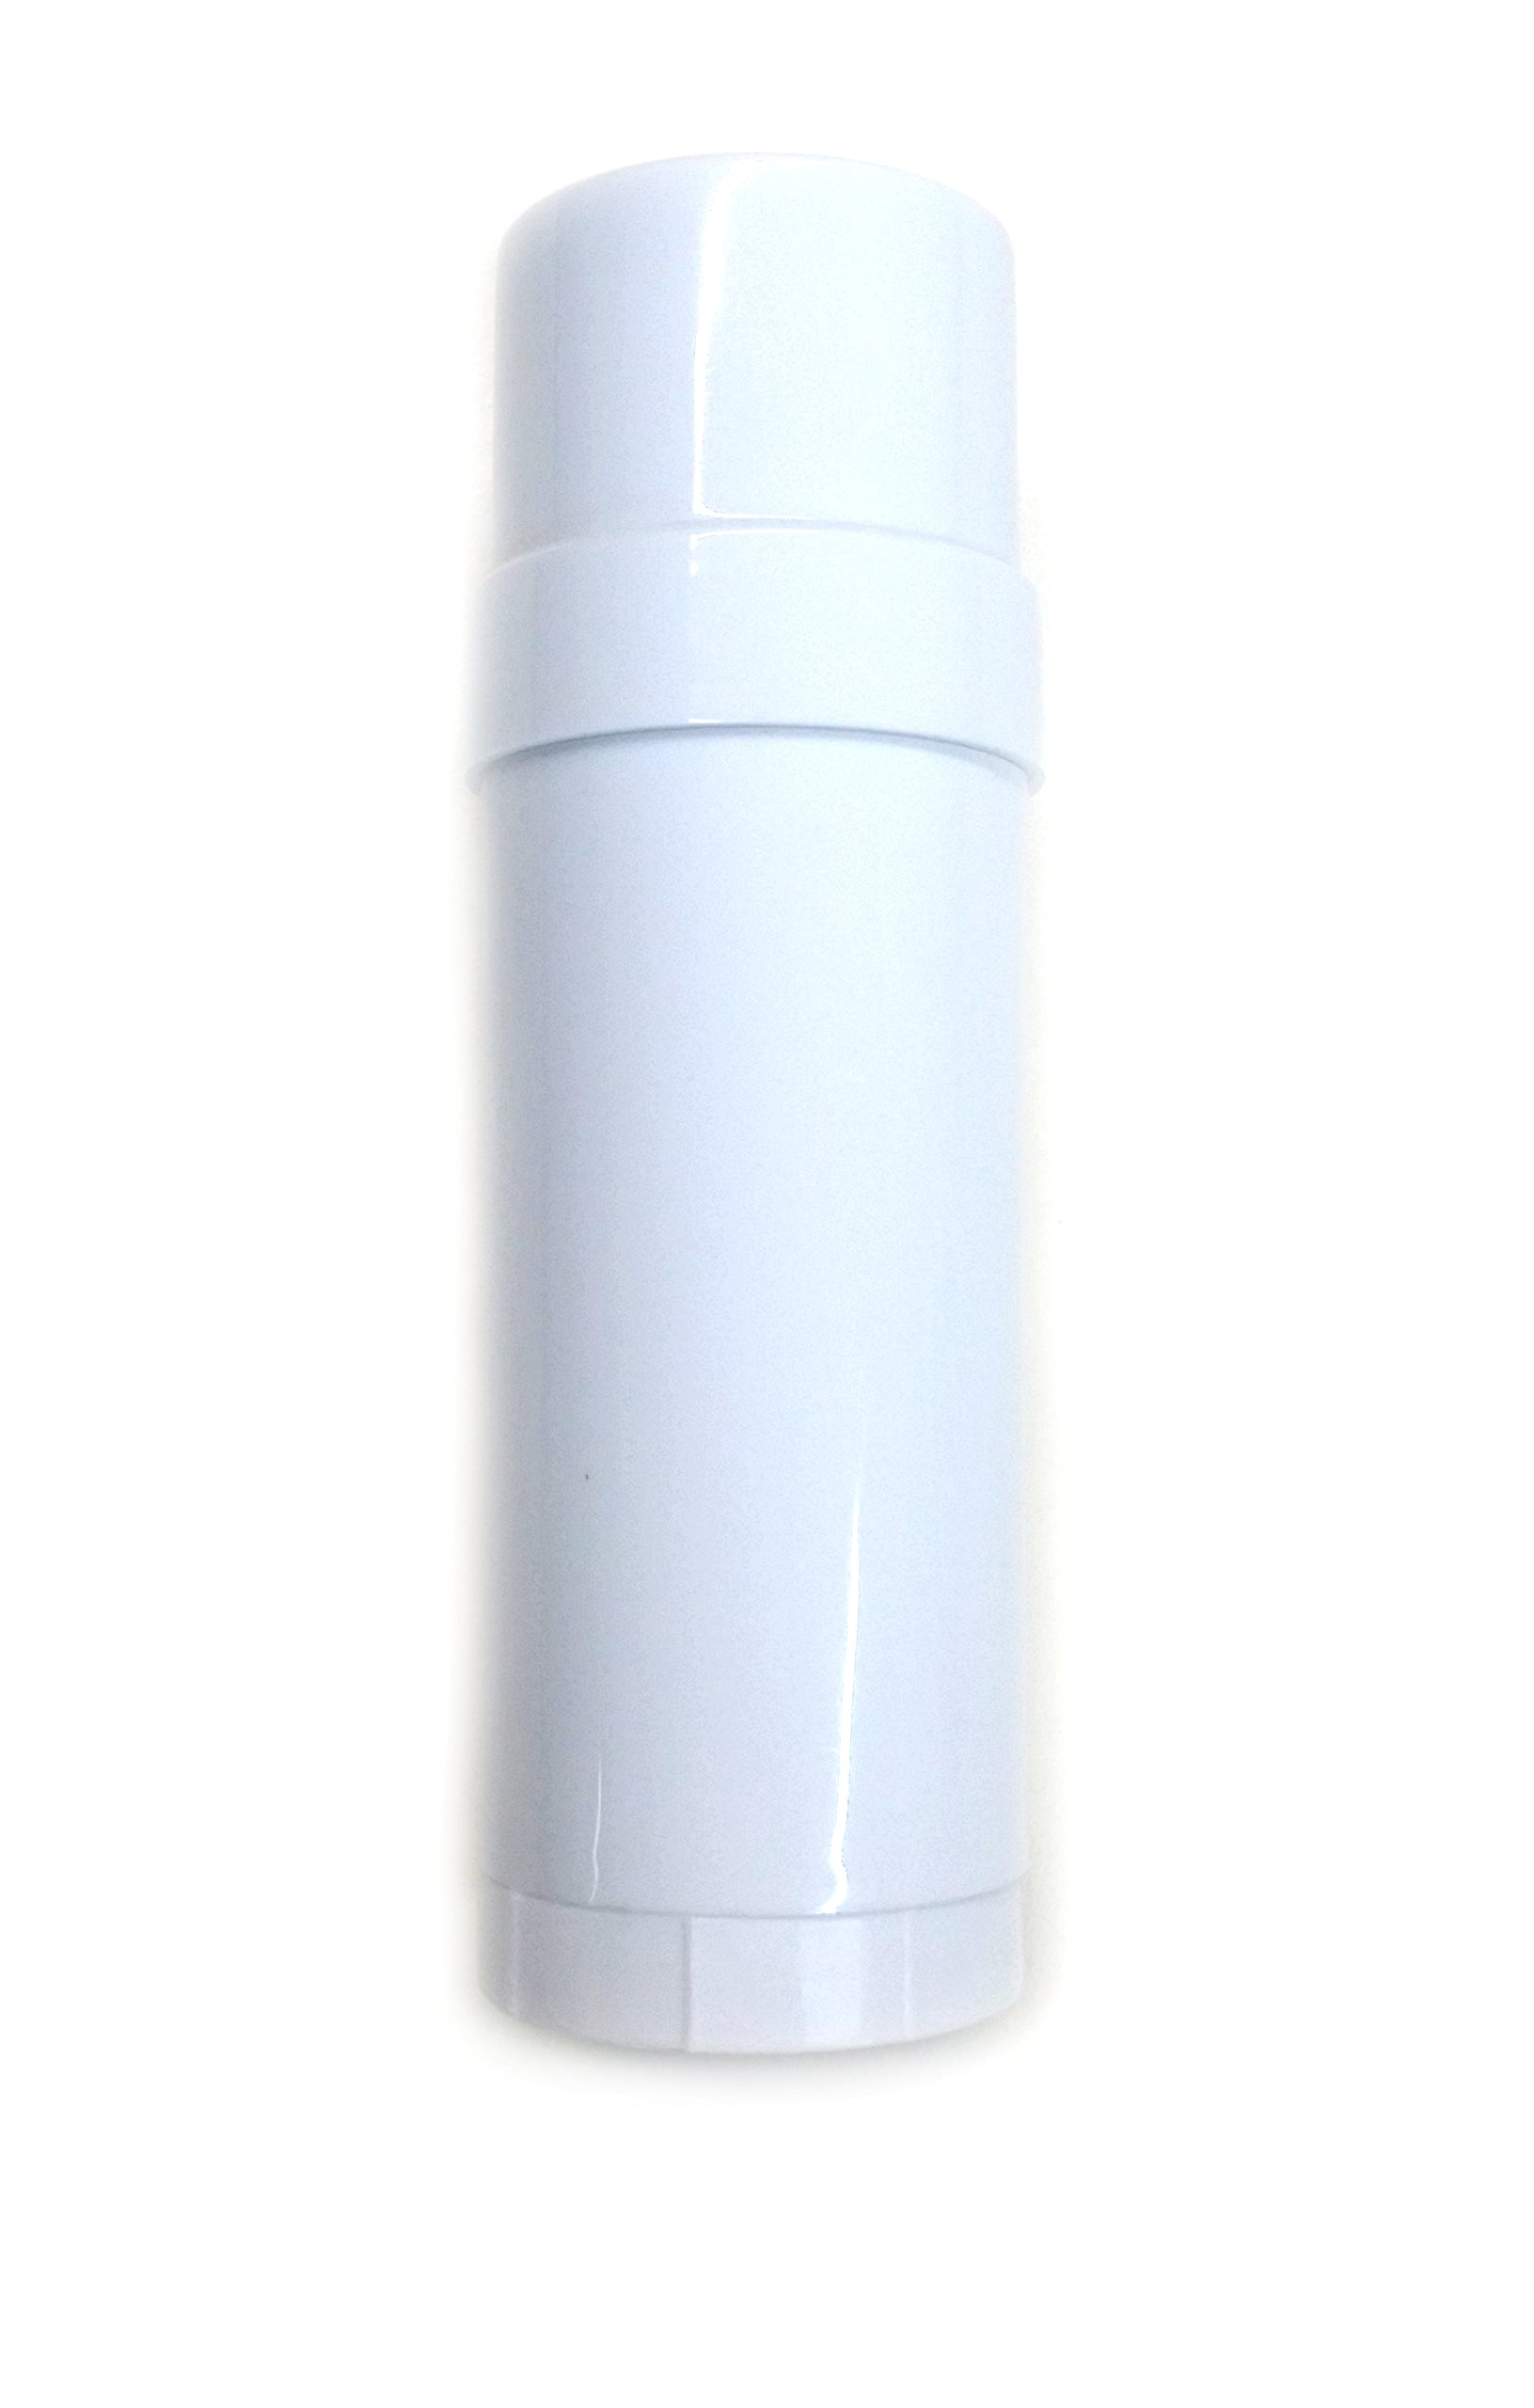 (24) Empty Clear Plastic Deodorant Containers - 2.2 Oz Cylinders (White) by Ozone Layer Deodorant